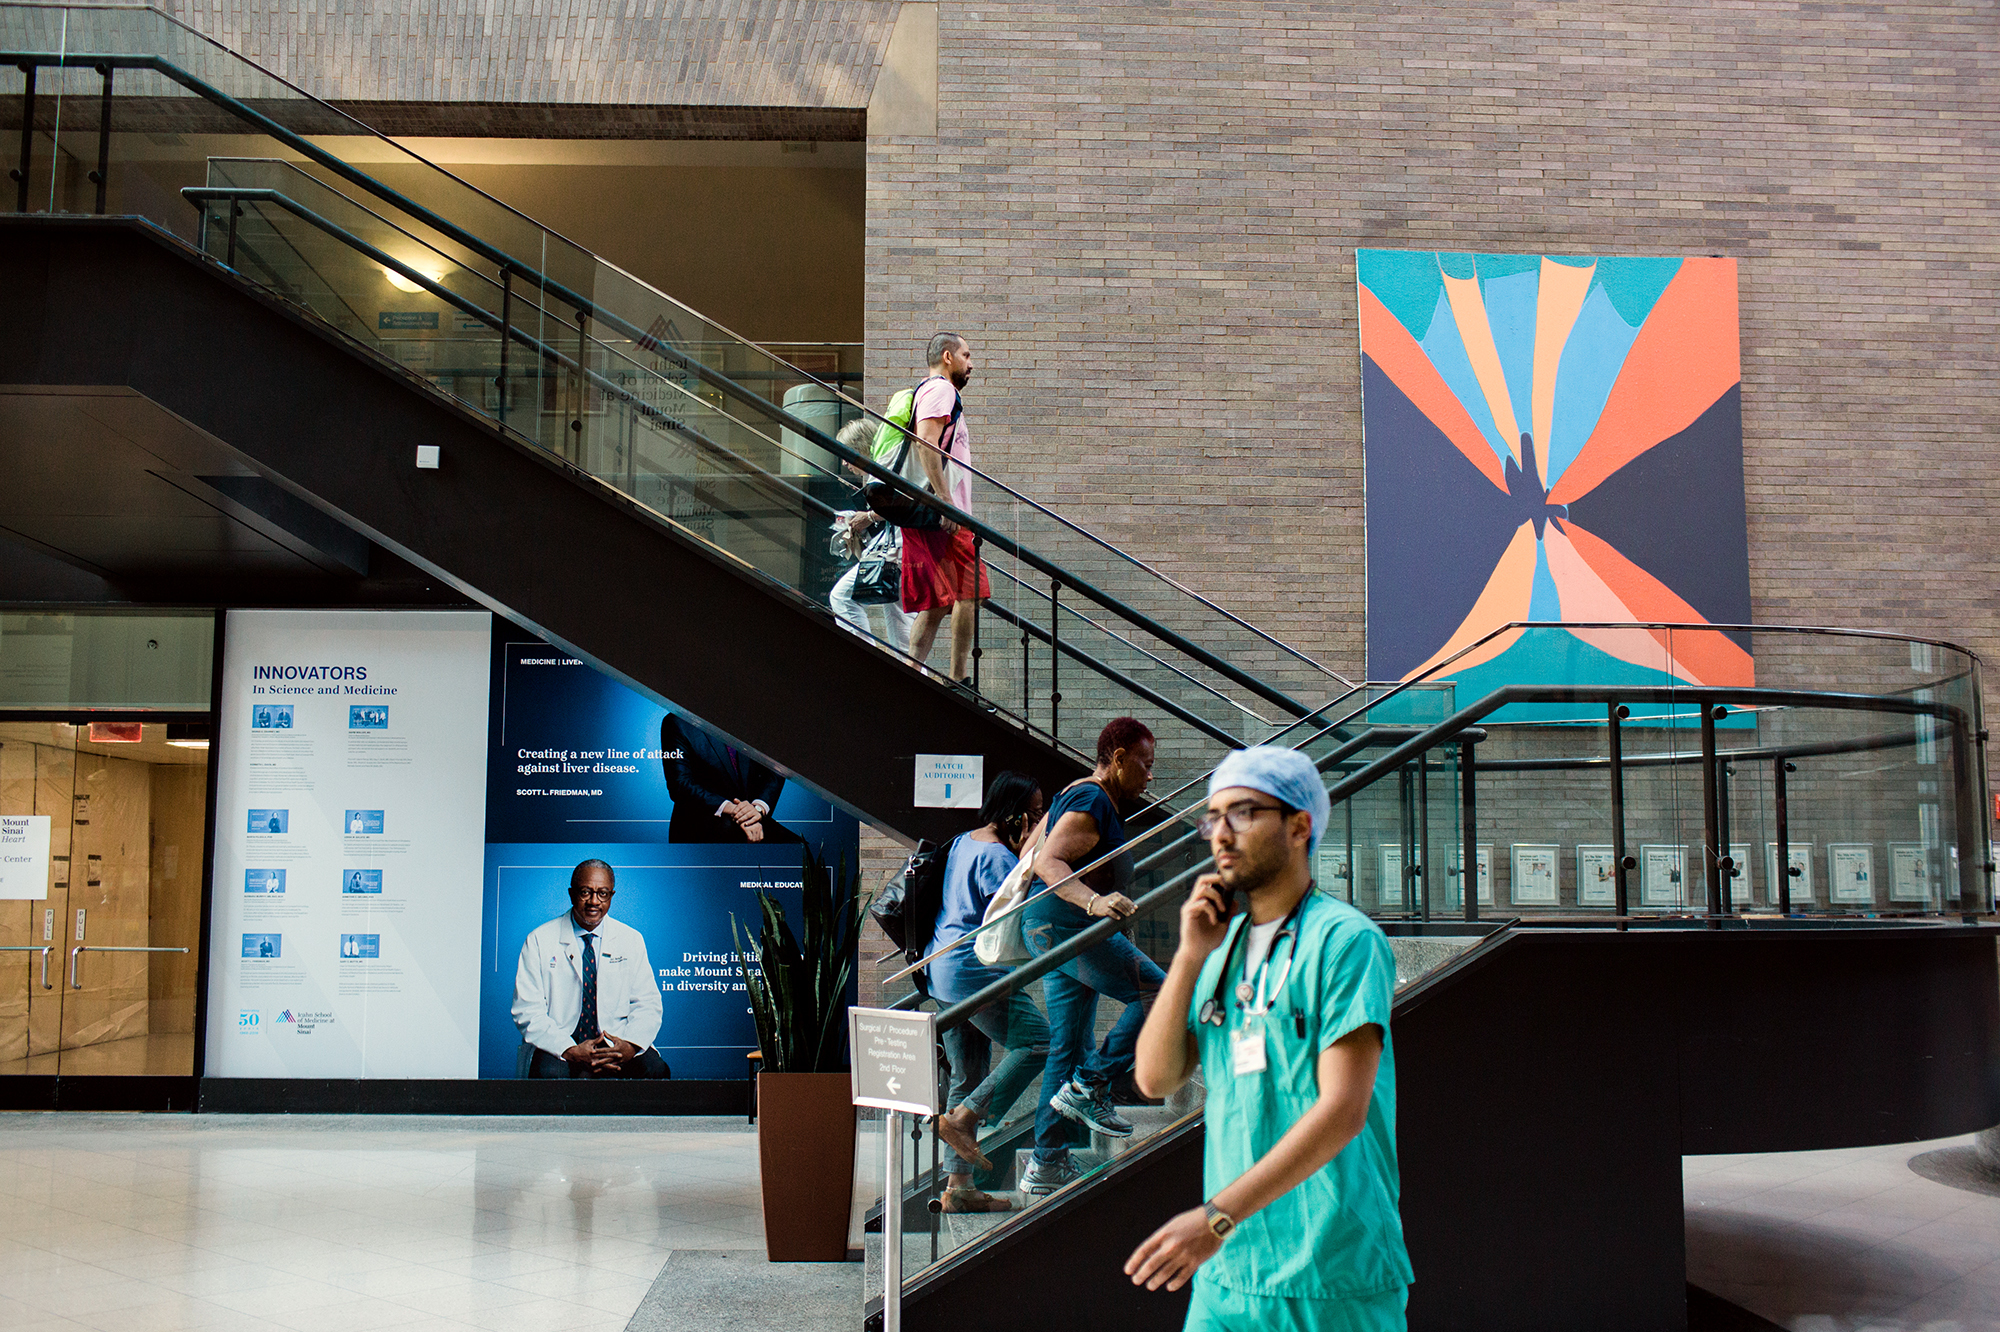 Icahn School of Medicine at Mount Sinai in New York City is reconsidering its participation in Alpha Omega Alpha.